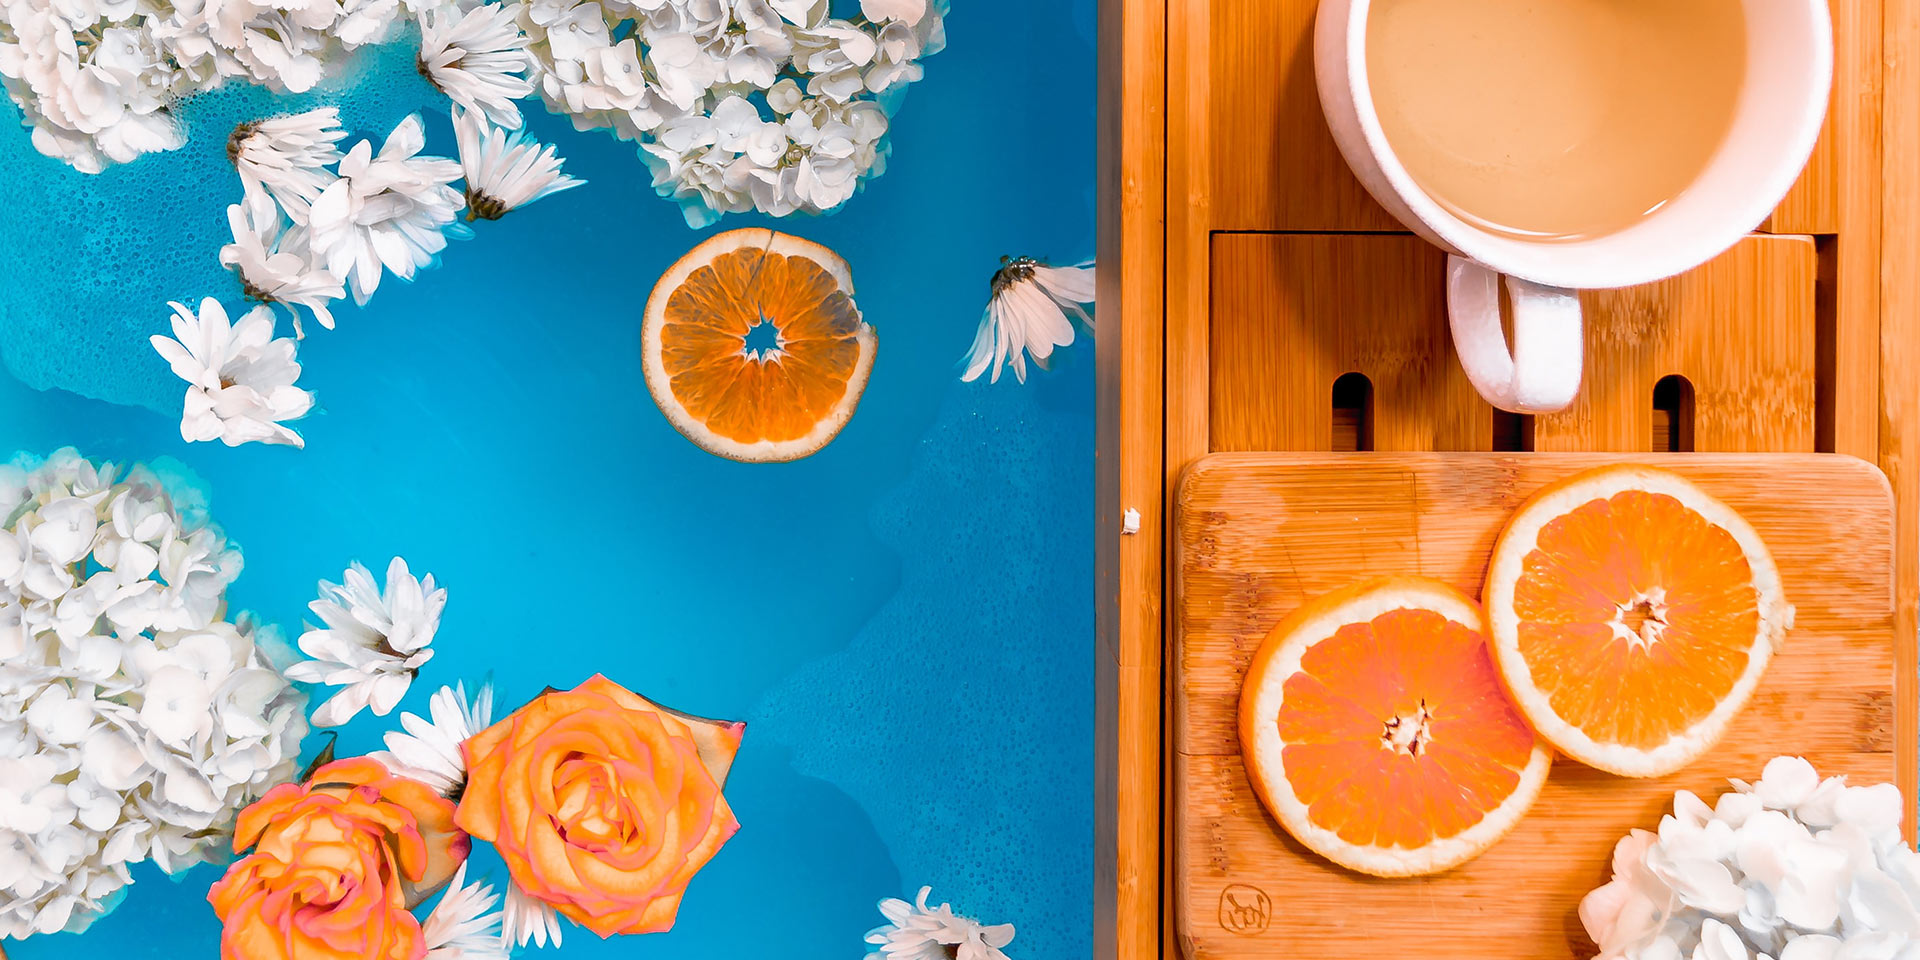 A bubble bath decorated with flowers and oranges with a cup of tea on the side.